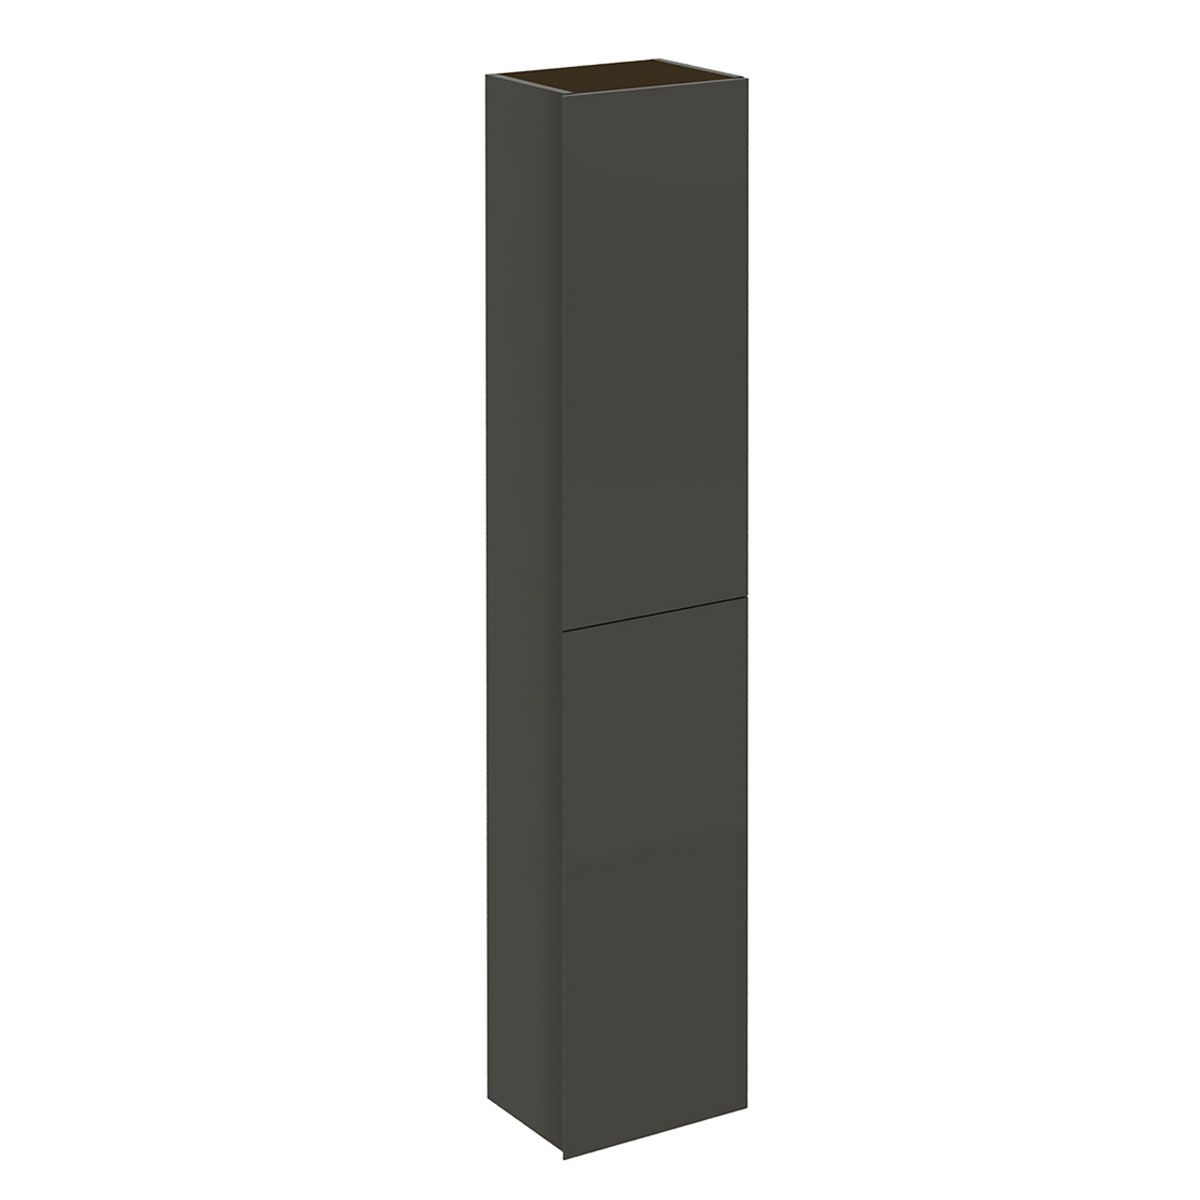 Frontline Valencia Anthracite Wall Mounted Tall Unit